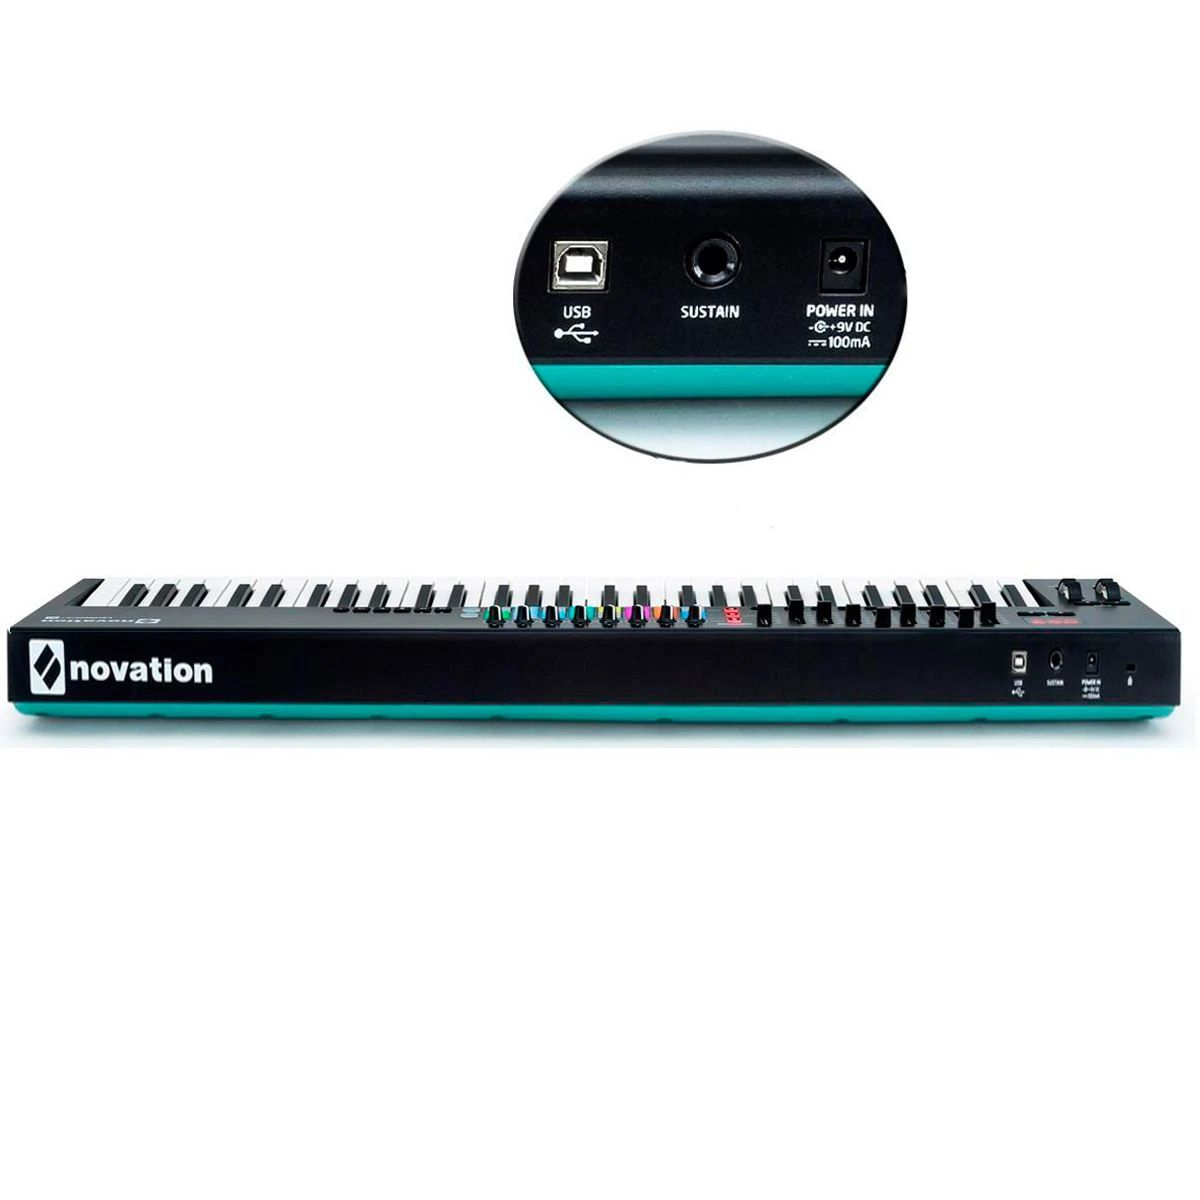 Teclado Controlador Midi Novation Launchkey 61 Mk2